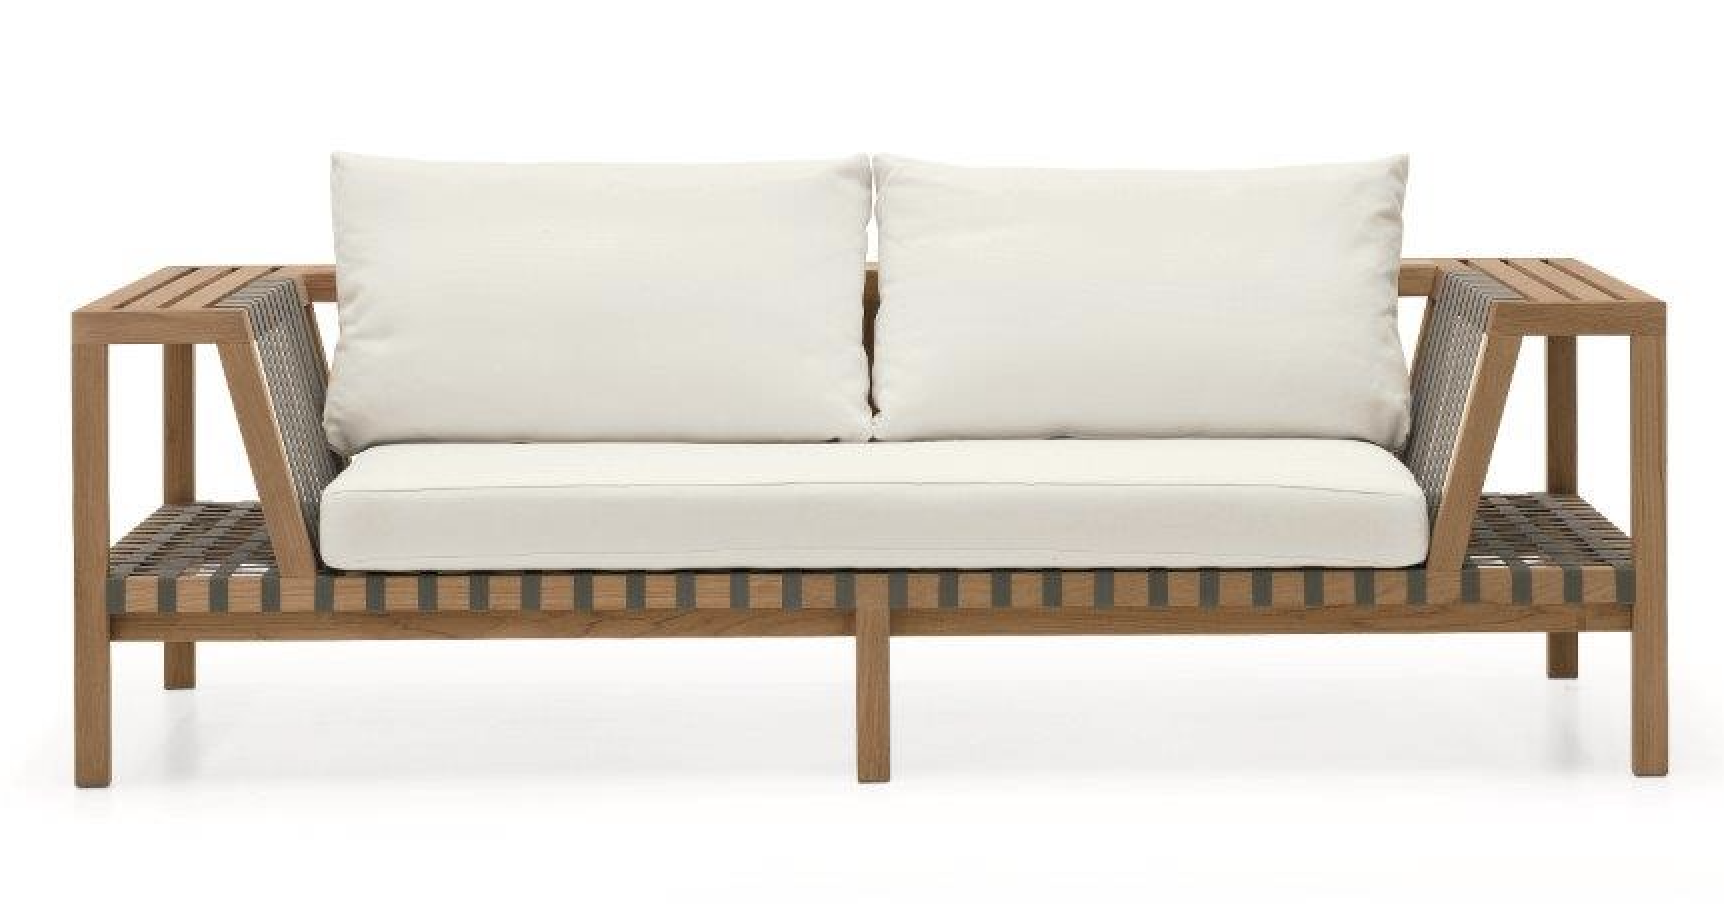 Product Image Network 2 seat Sofa